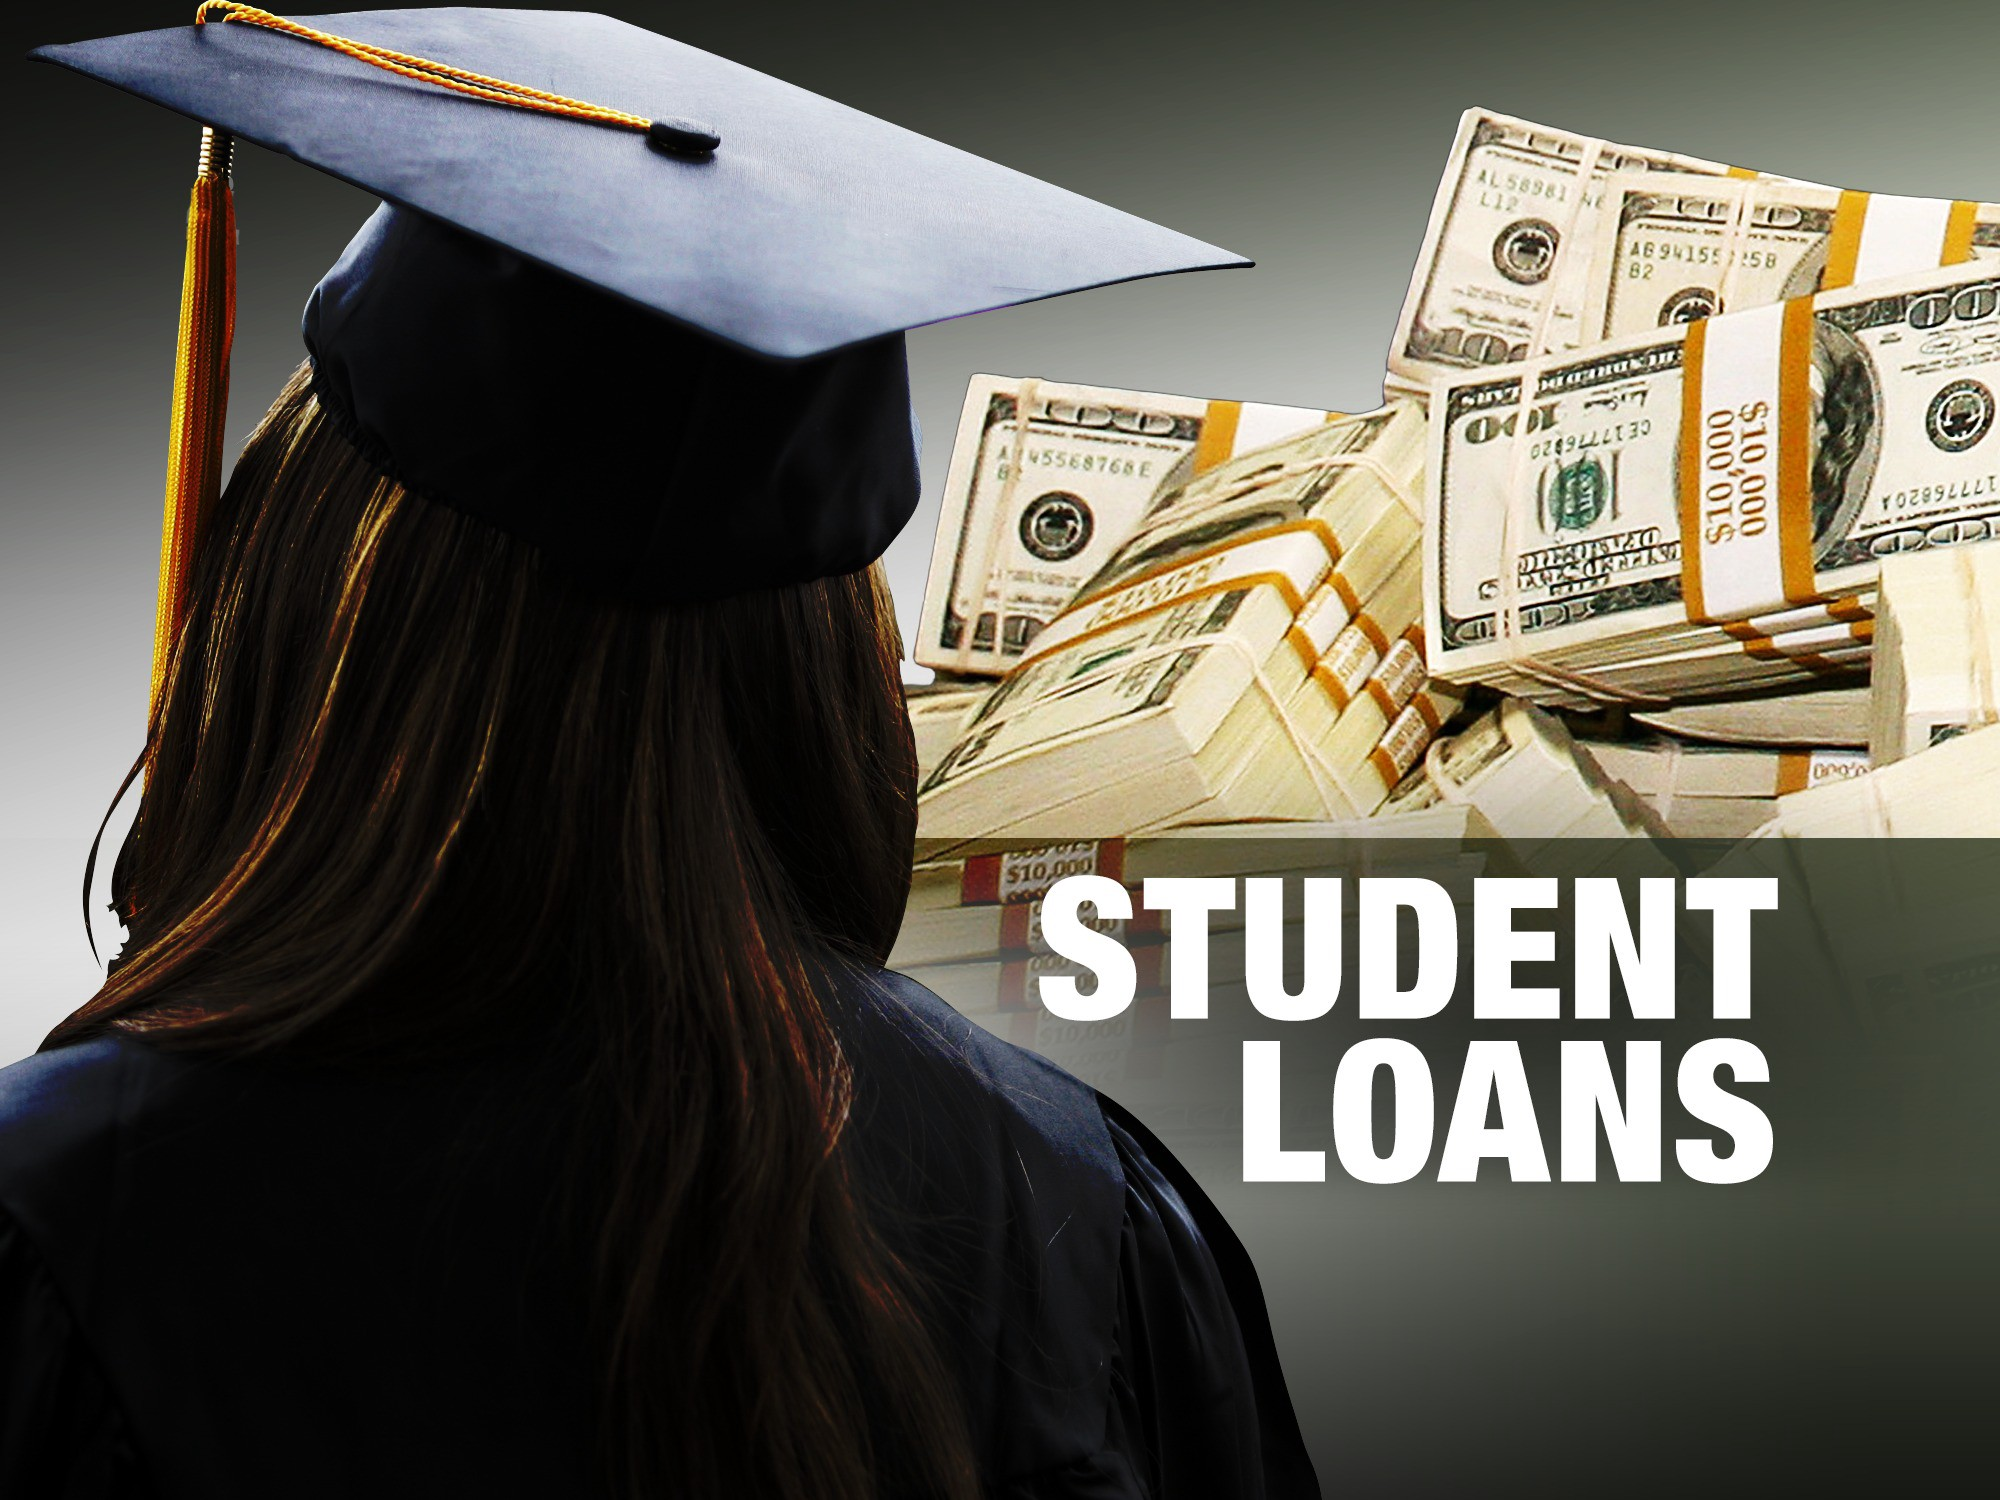 Clueless About Student Loans? Get Some Help Here